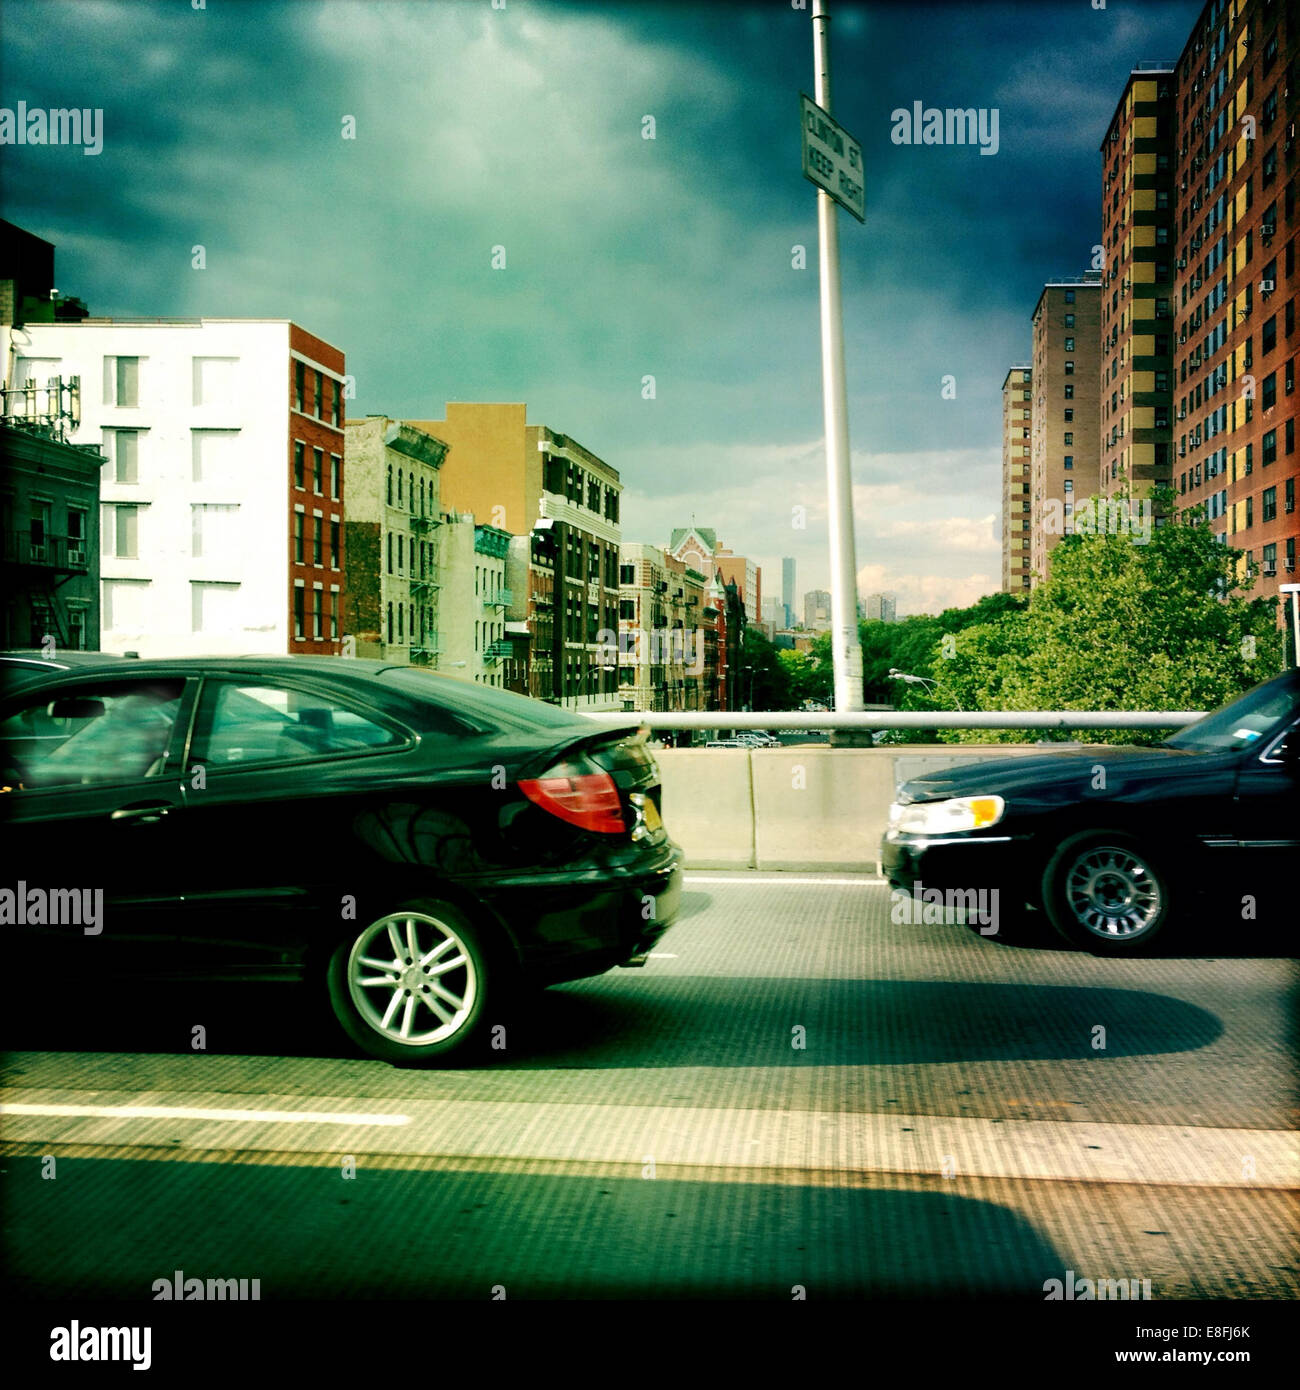 USA, New York State, New York City, Queens, Urban scene with traffic - Stock Image